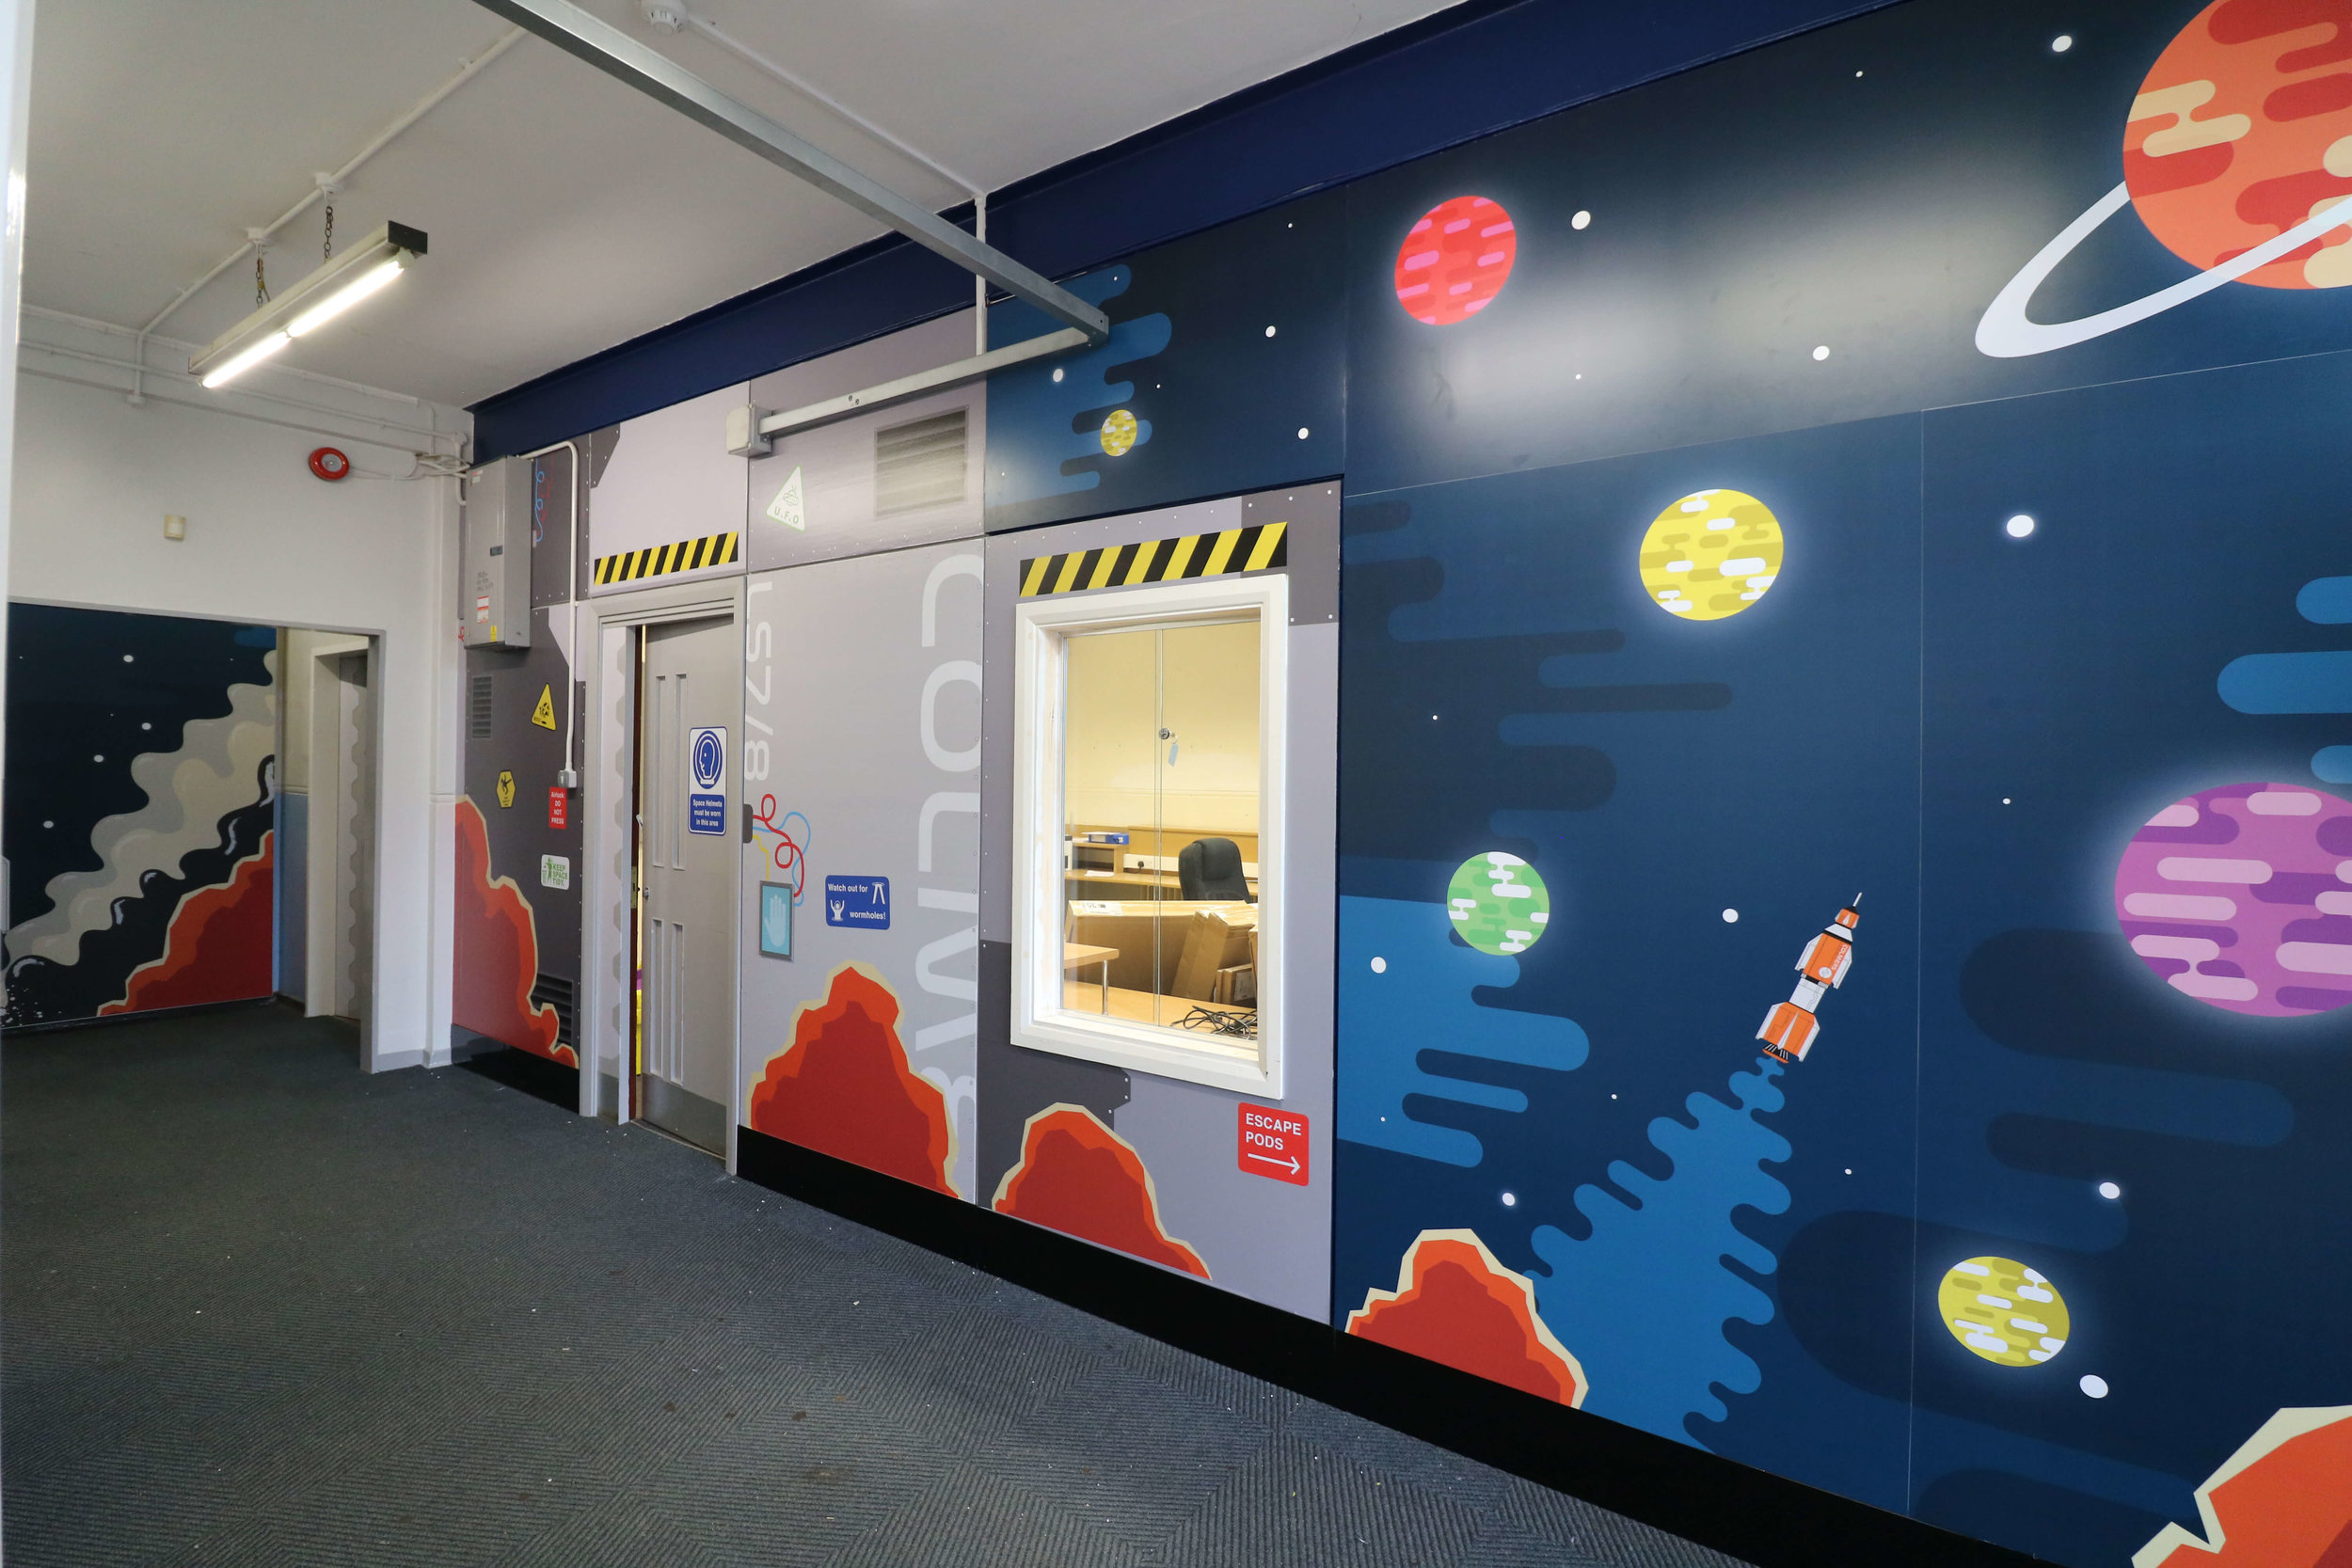 Space station wall graphic | School wall graphic